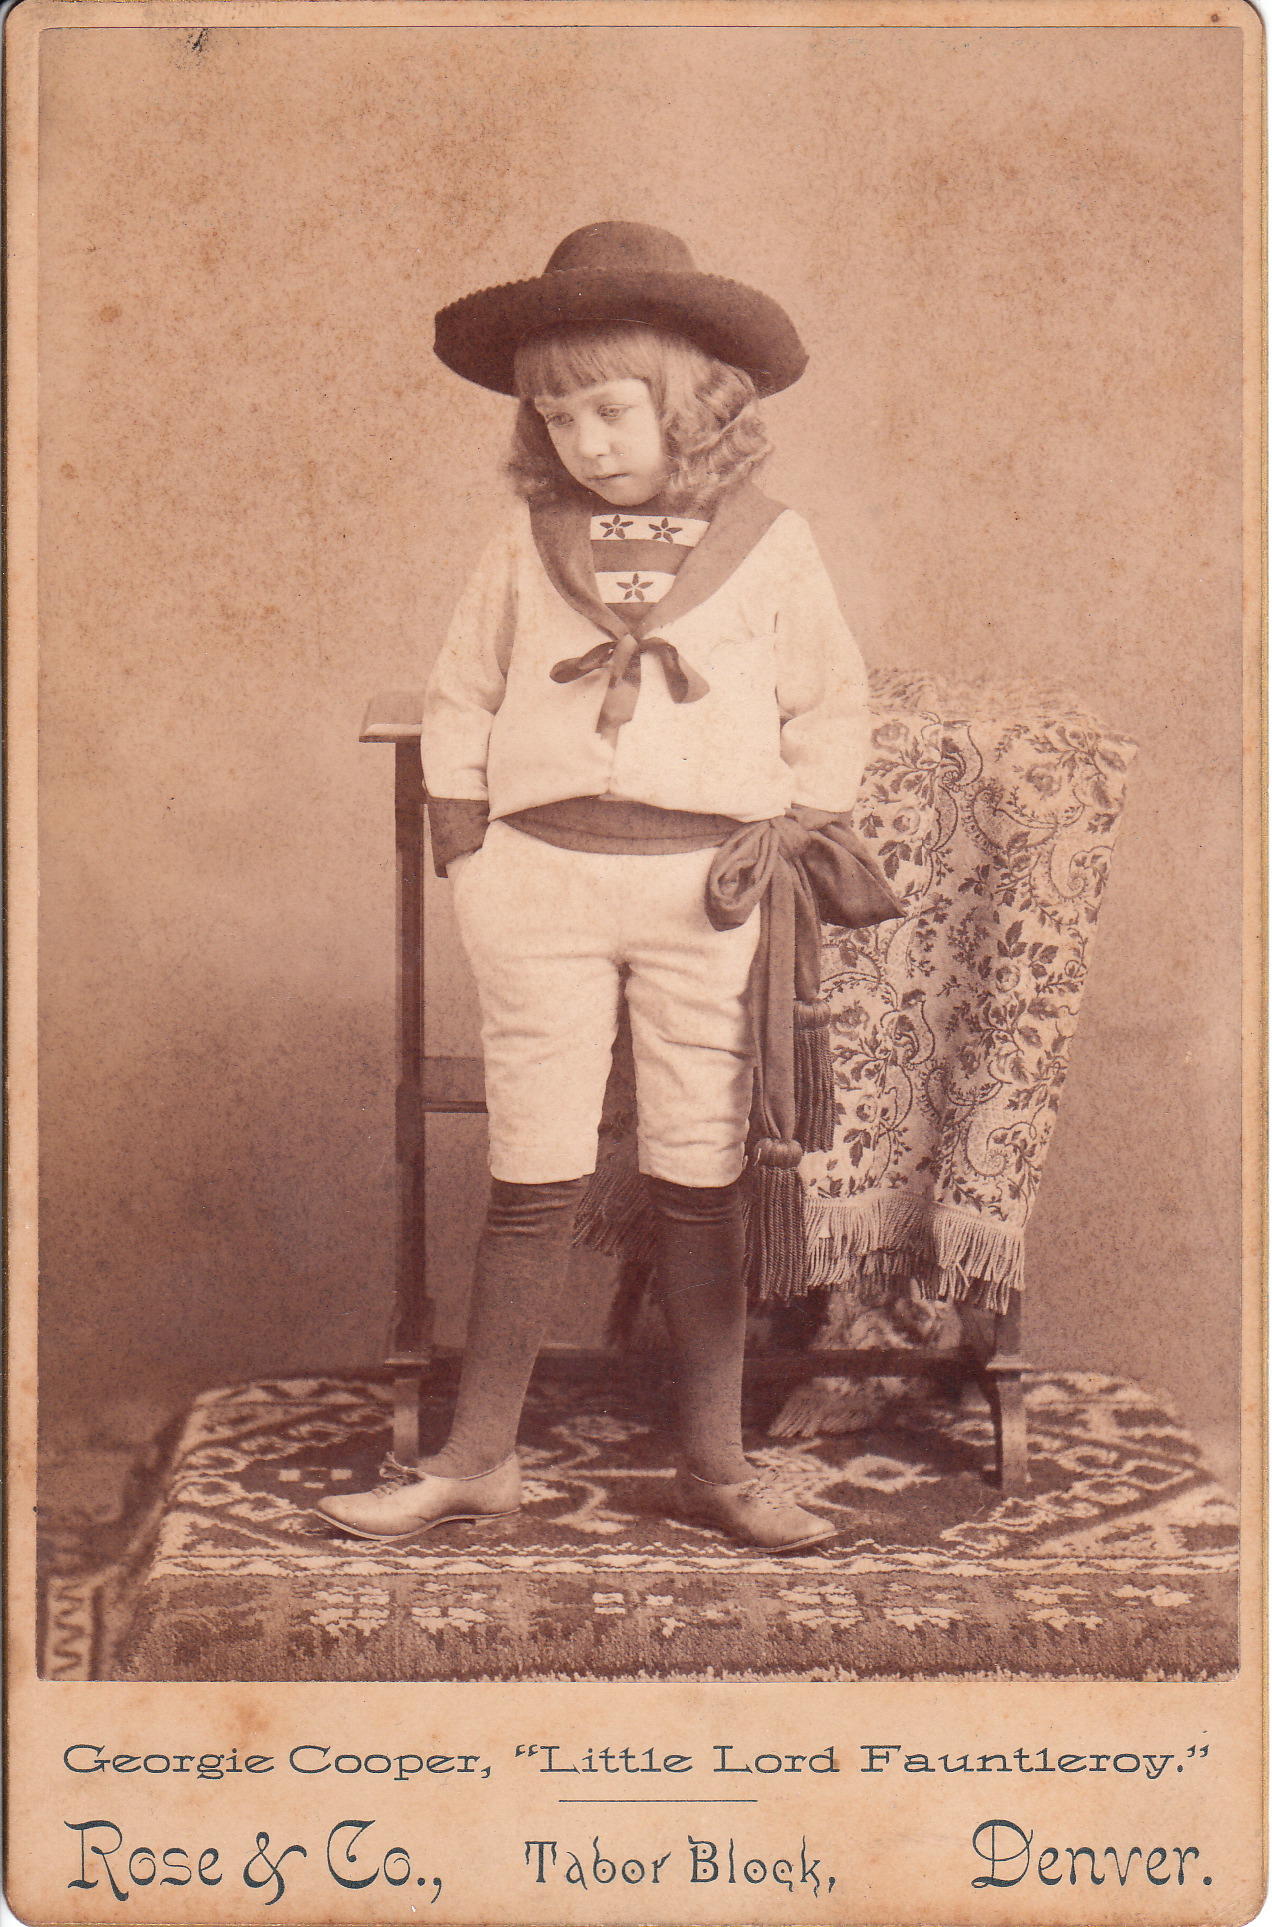 Georgie Cooper Child Actress Playing Little Lord Fauntleroy The Cabinet Card Gallery